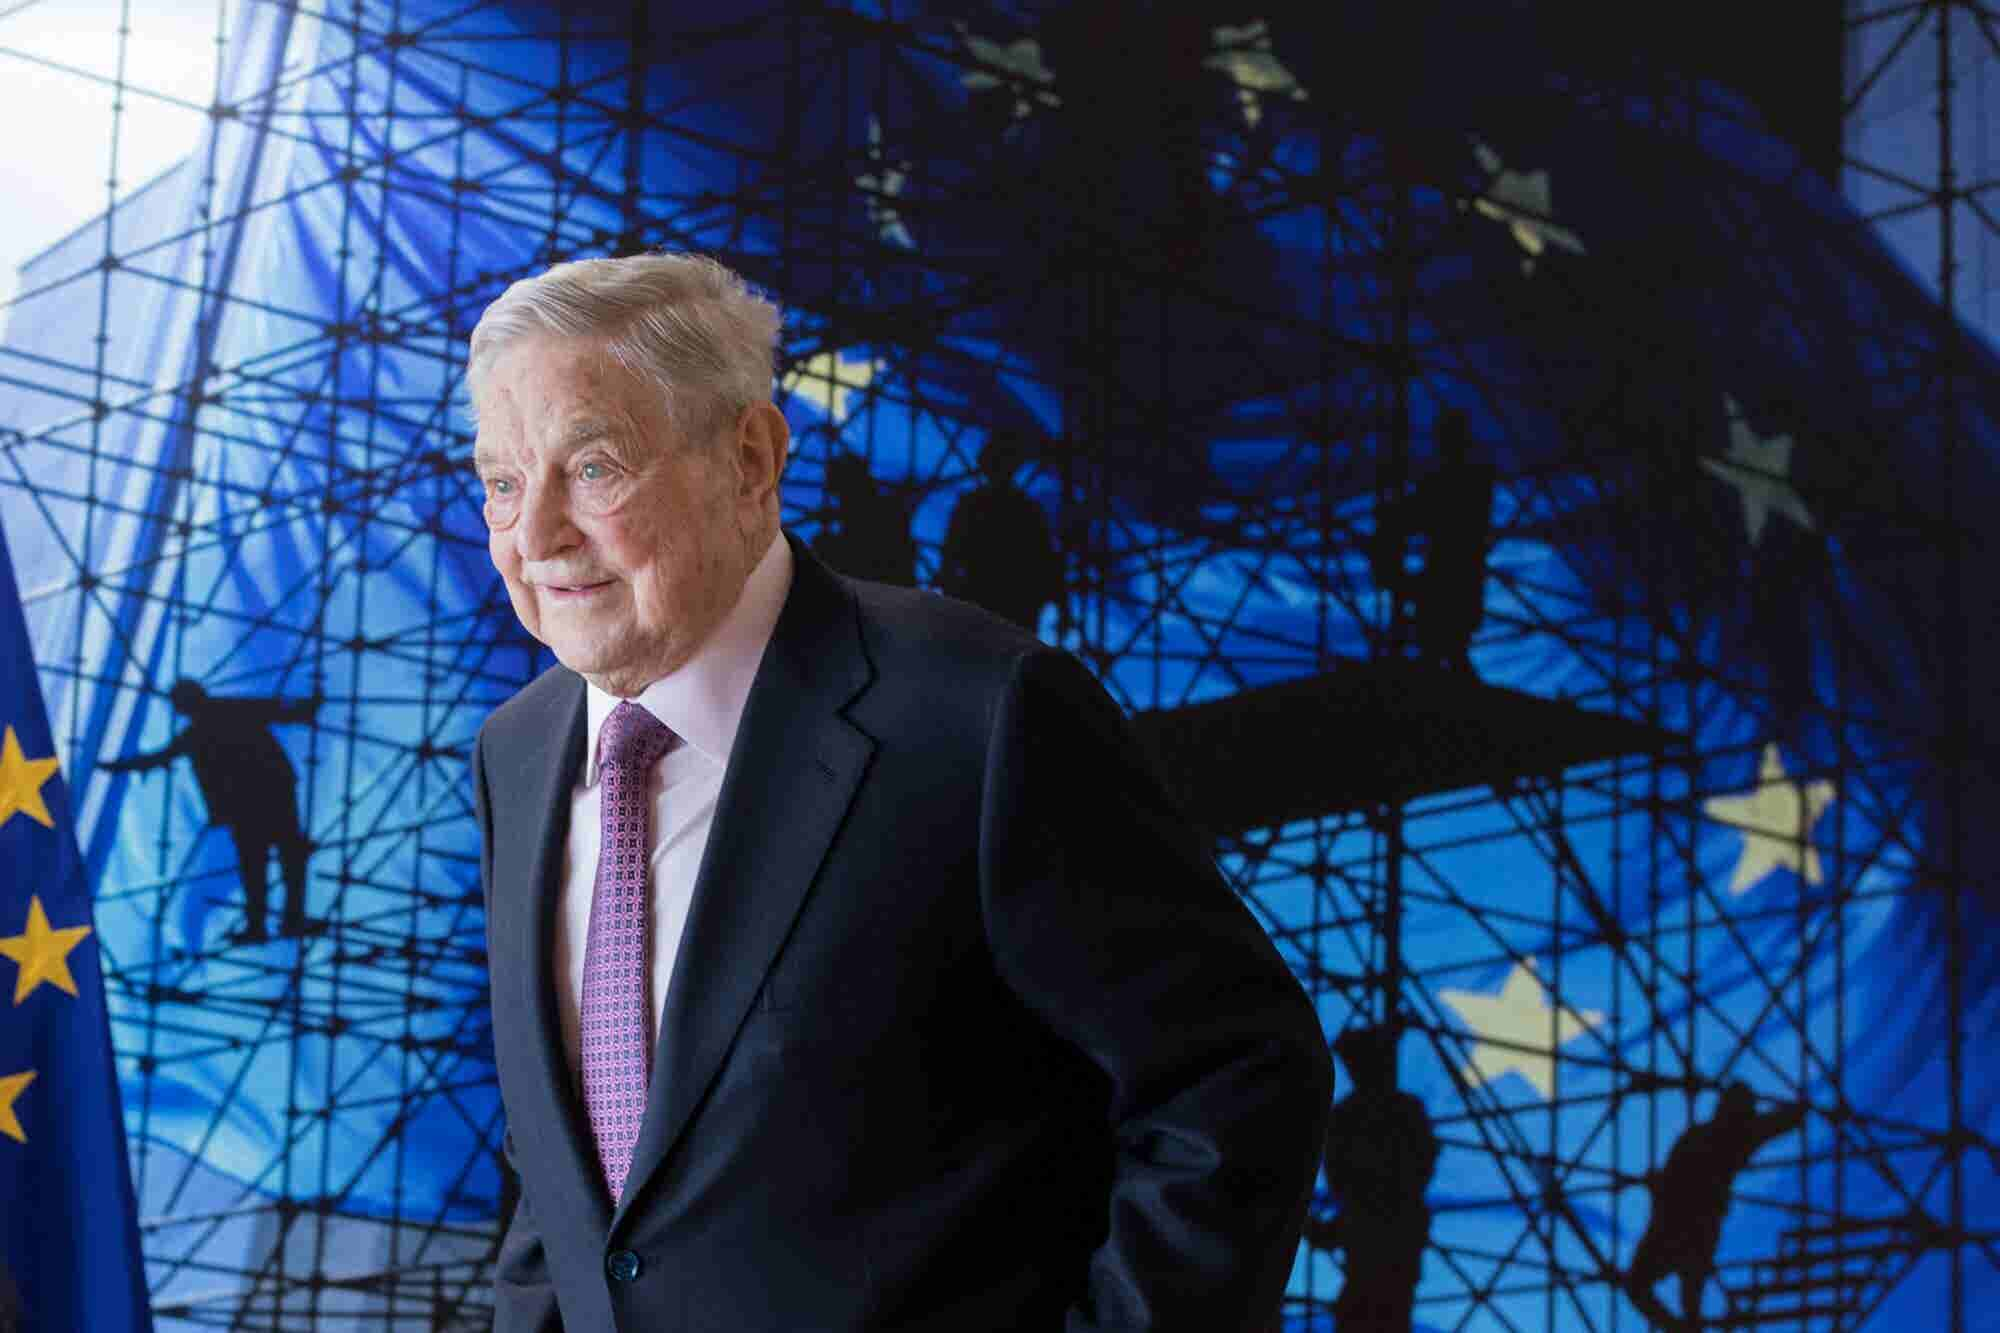 10 Things You Should Know About Billionaire Philanthropist George Soros